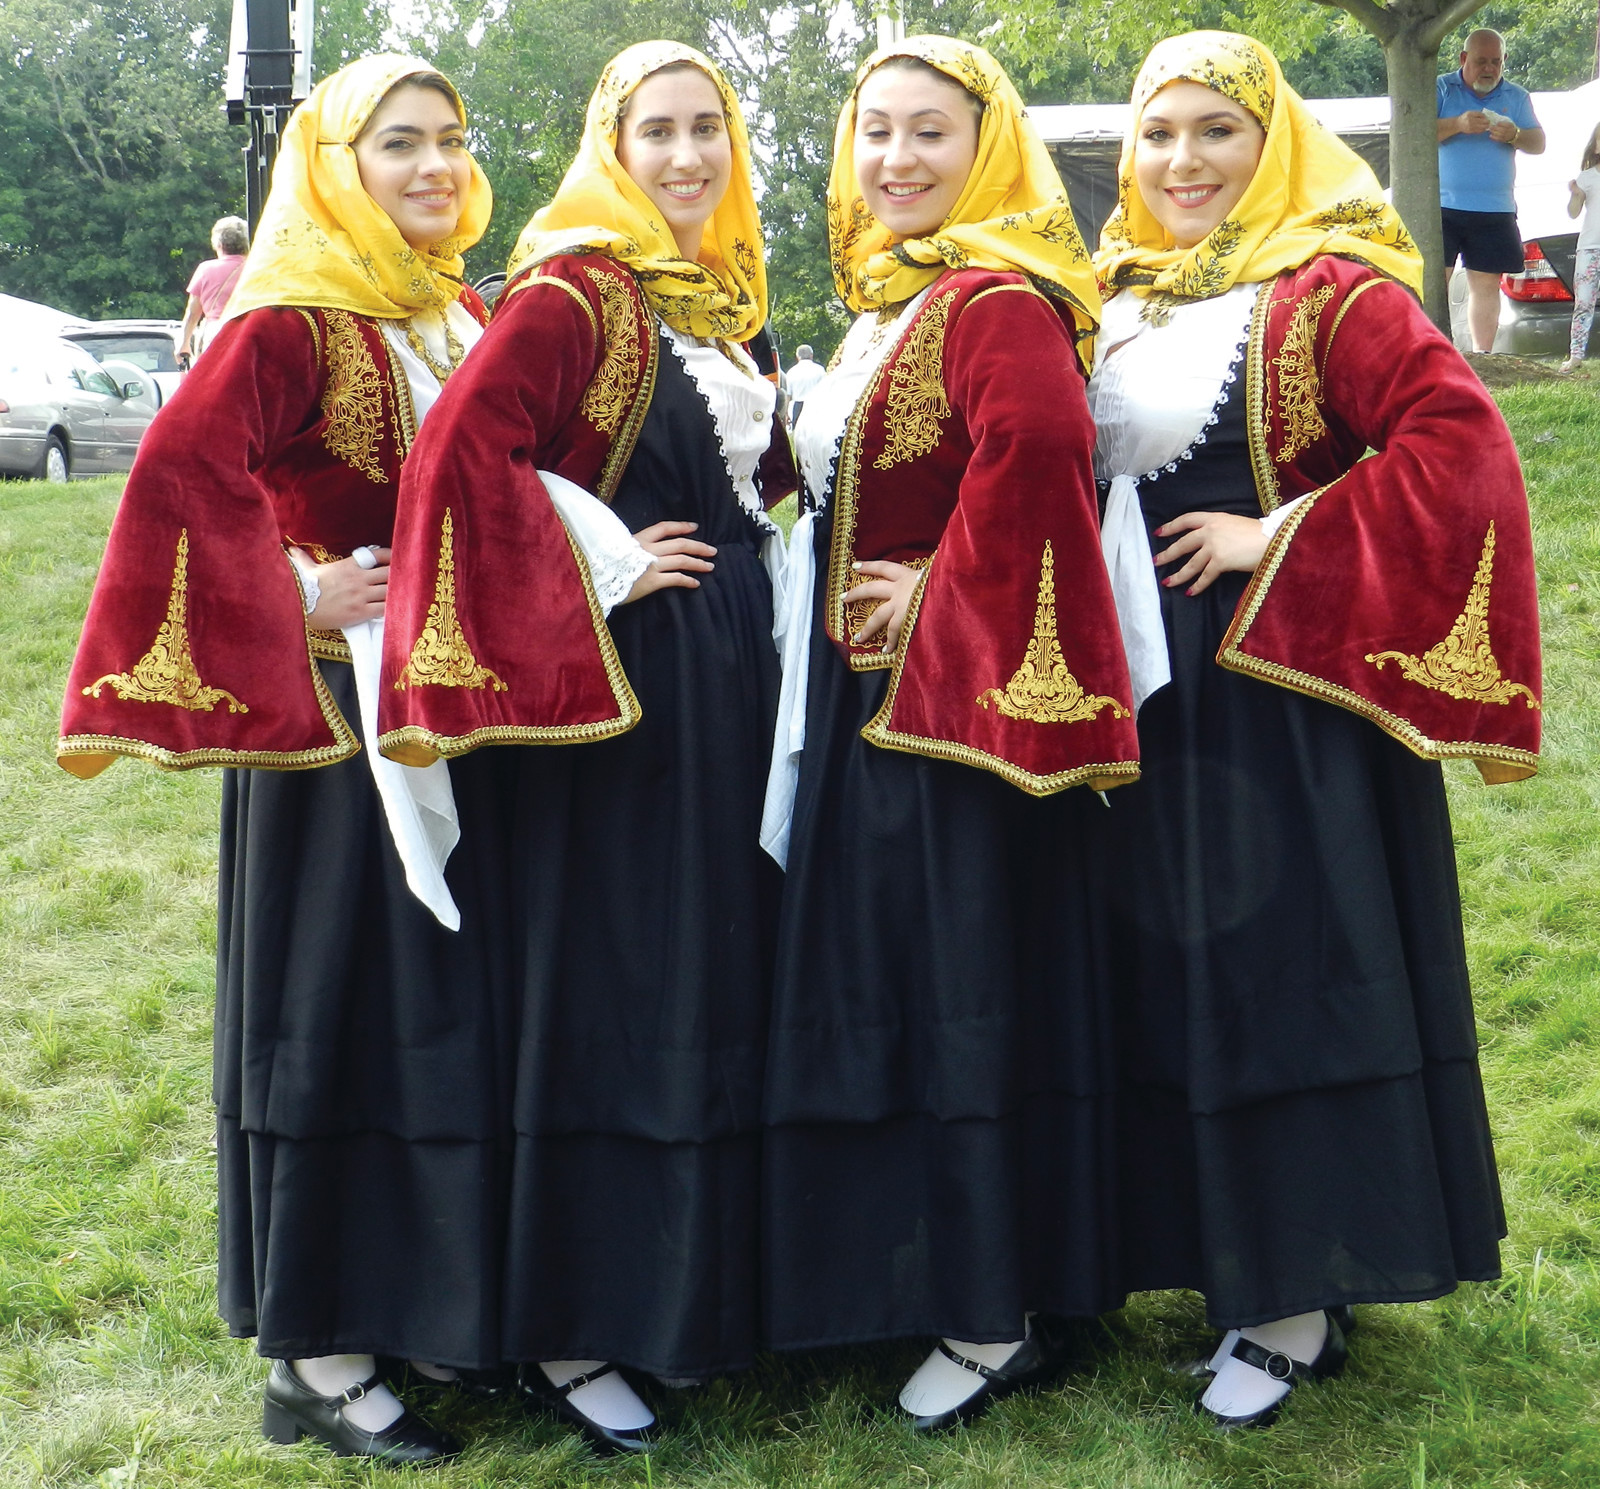 TALENTED TROUPERS: These are some of the older members of the famed Odyssey Dance Troupe who'll perform many unique Greek dances in handmade costumes this weekend at the Cranston Greek Festival.